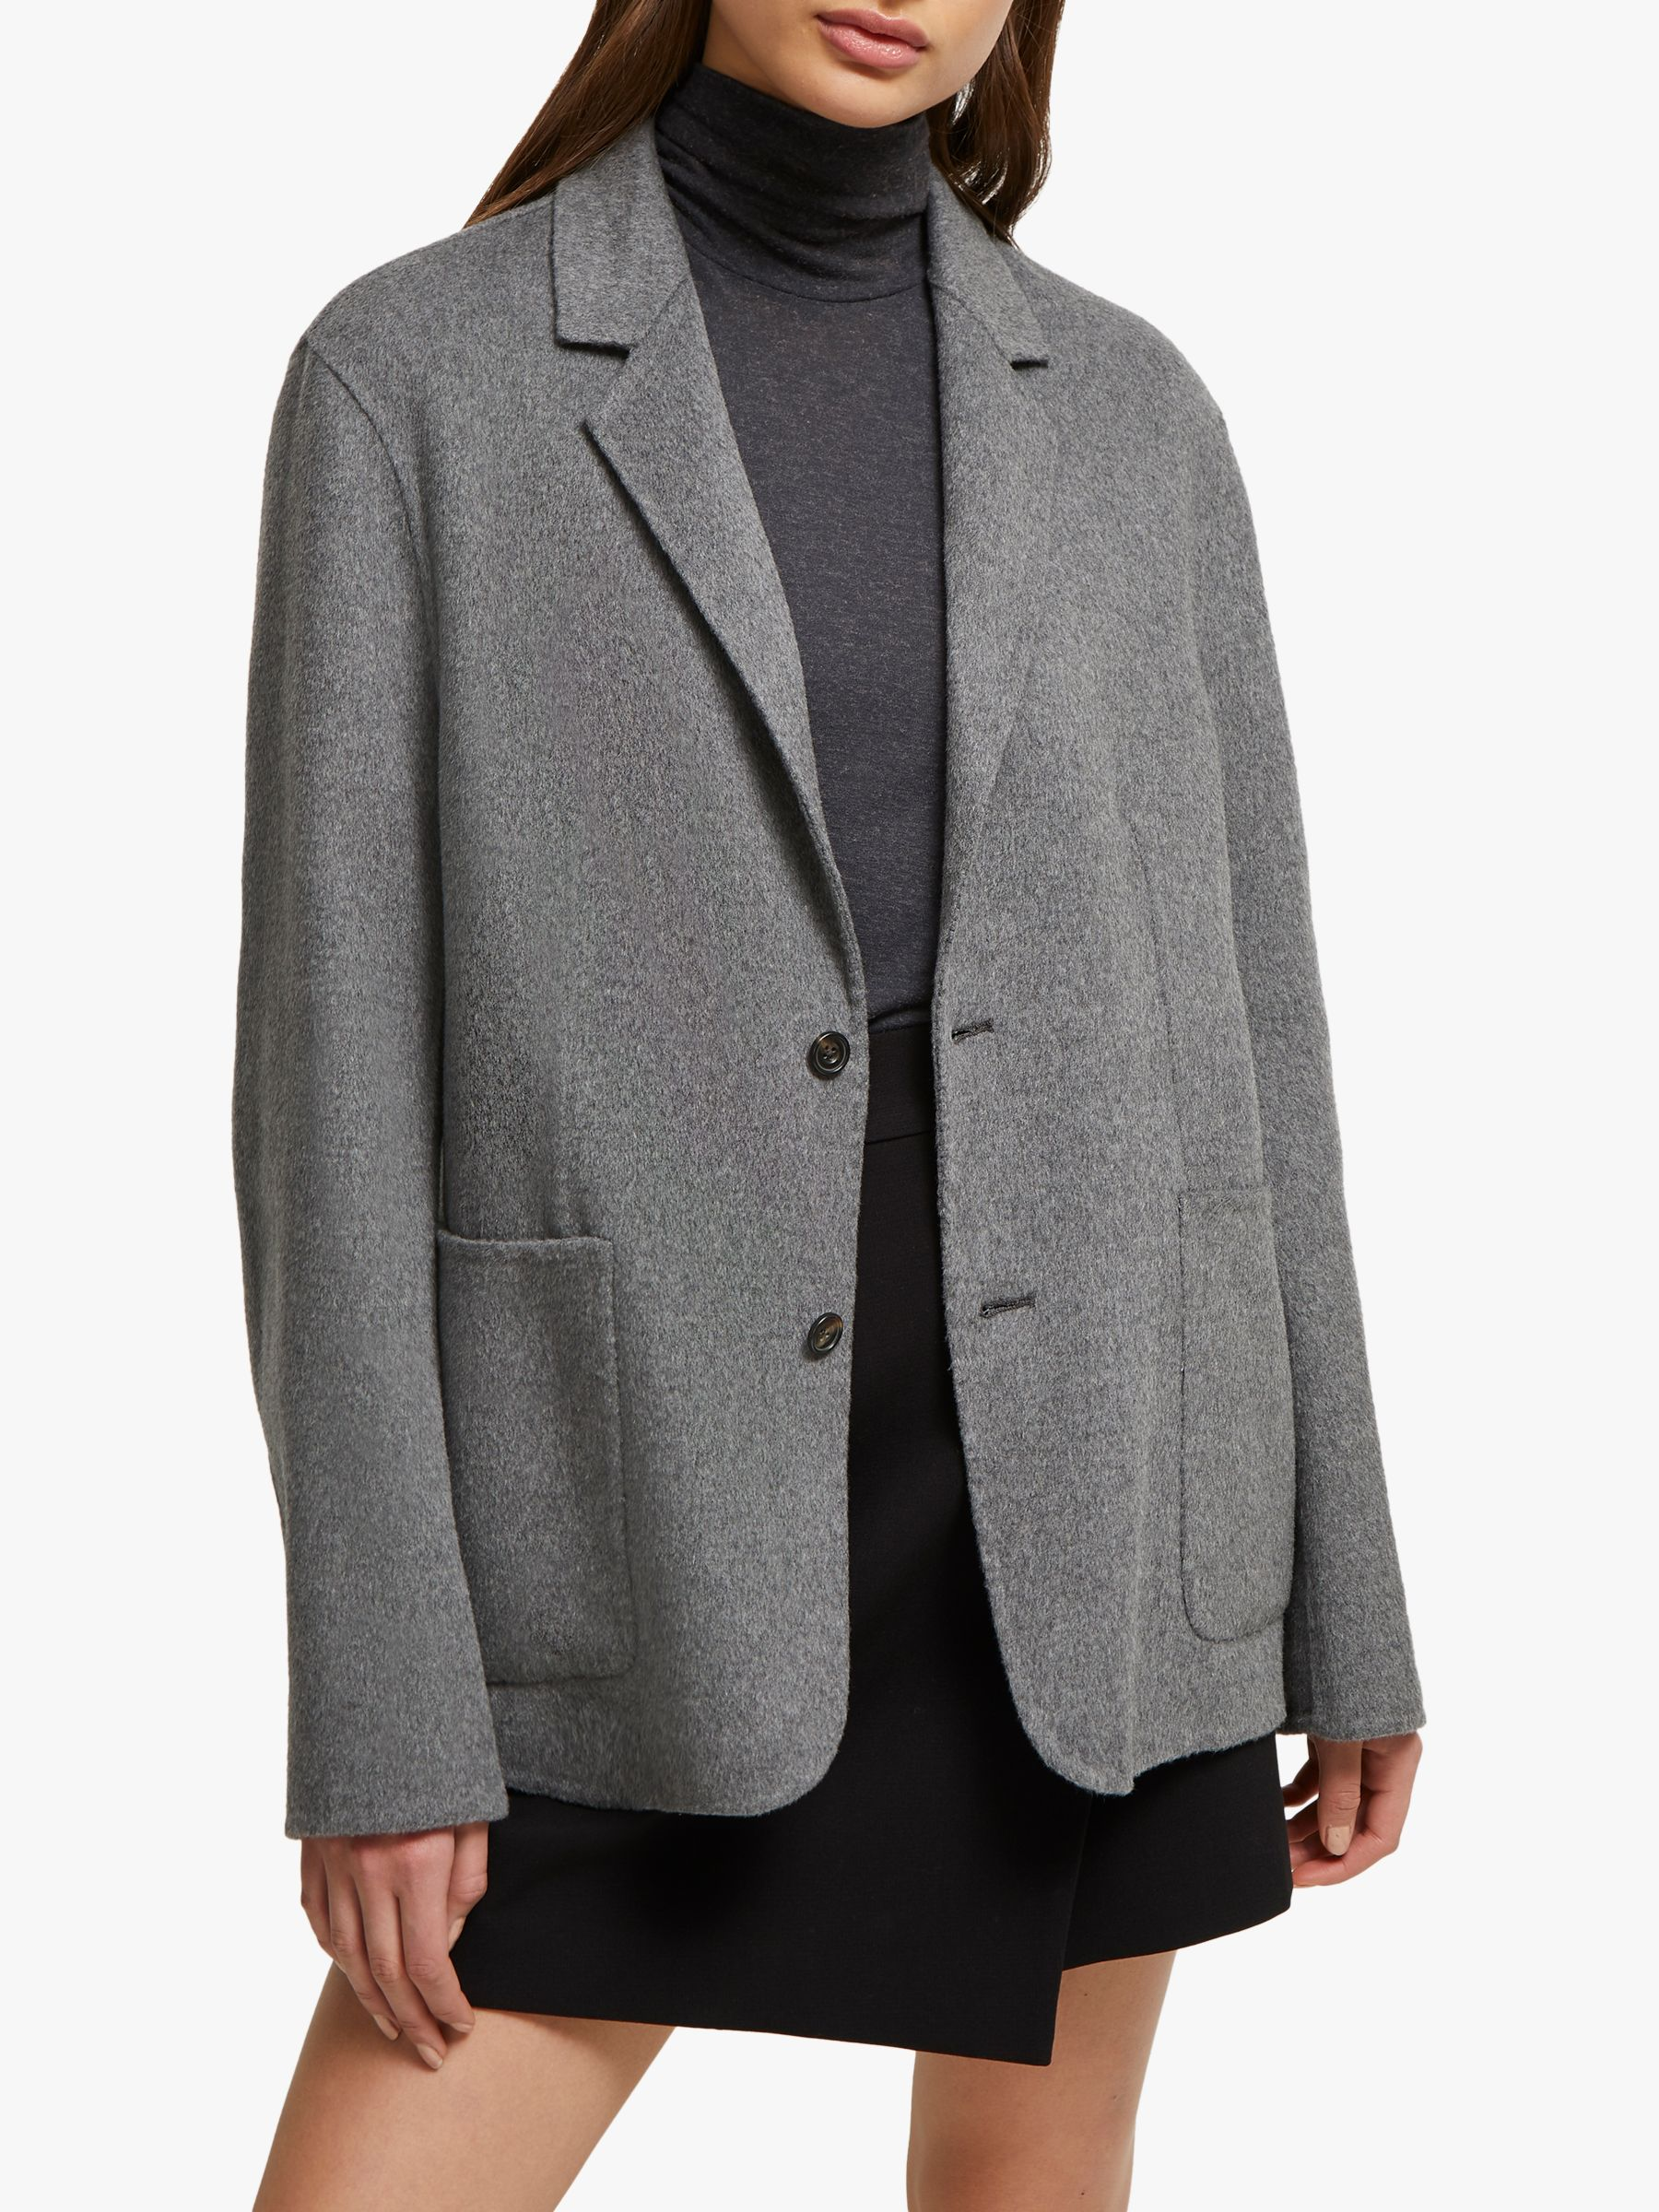 French Connection French Connection Daralicia Knit Blazer, Grey Melange